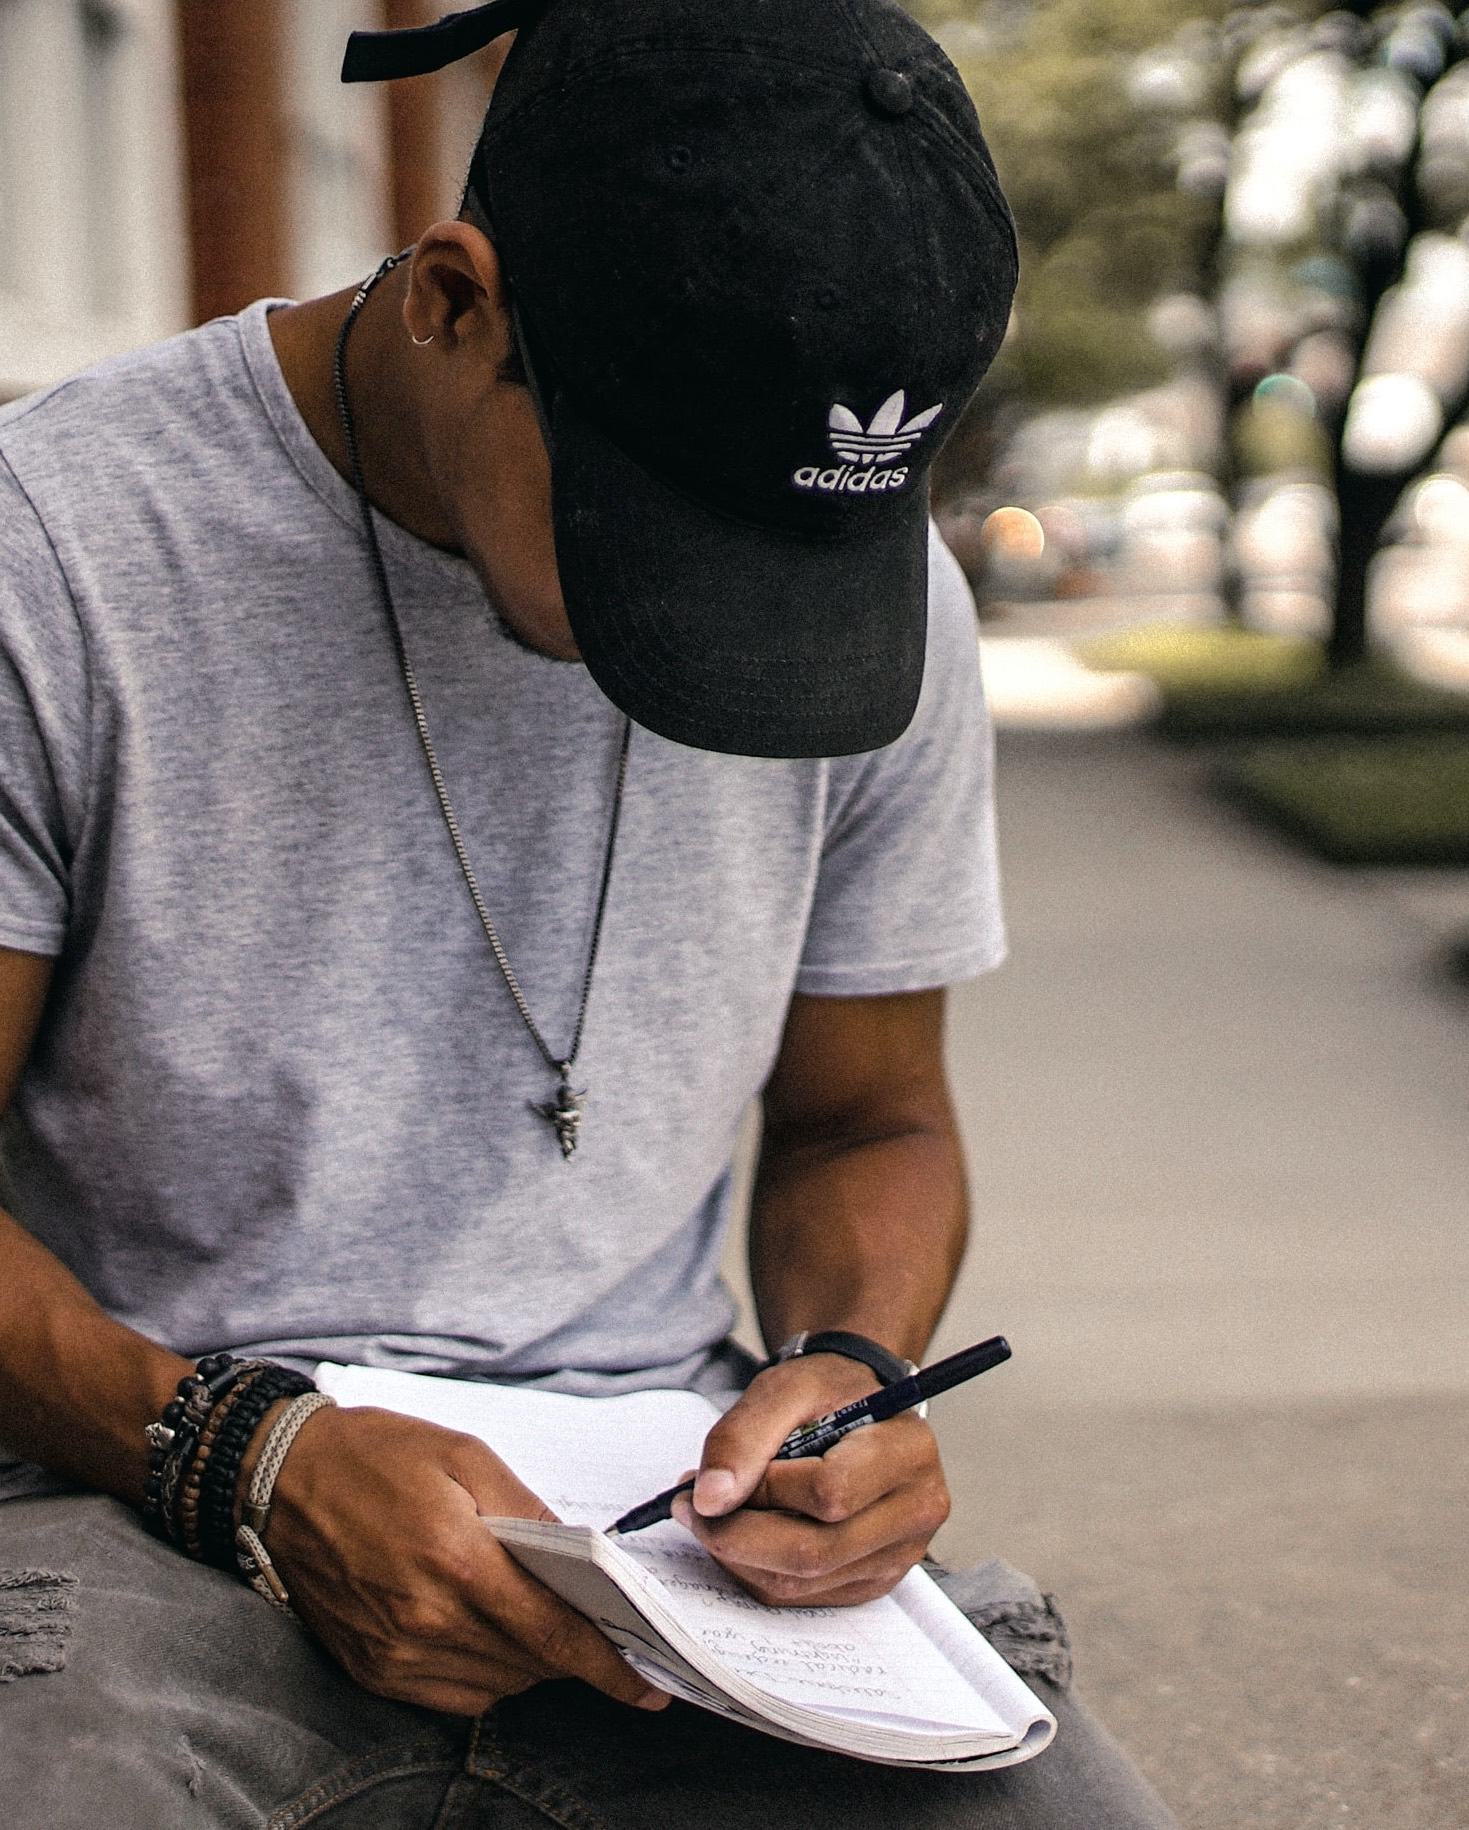 man in a baseball hat writing in a notebook